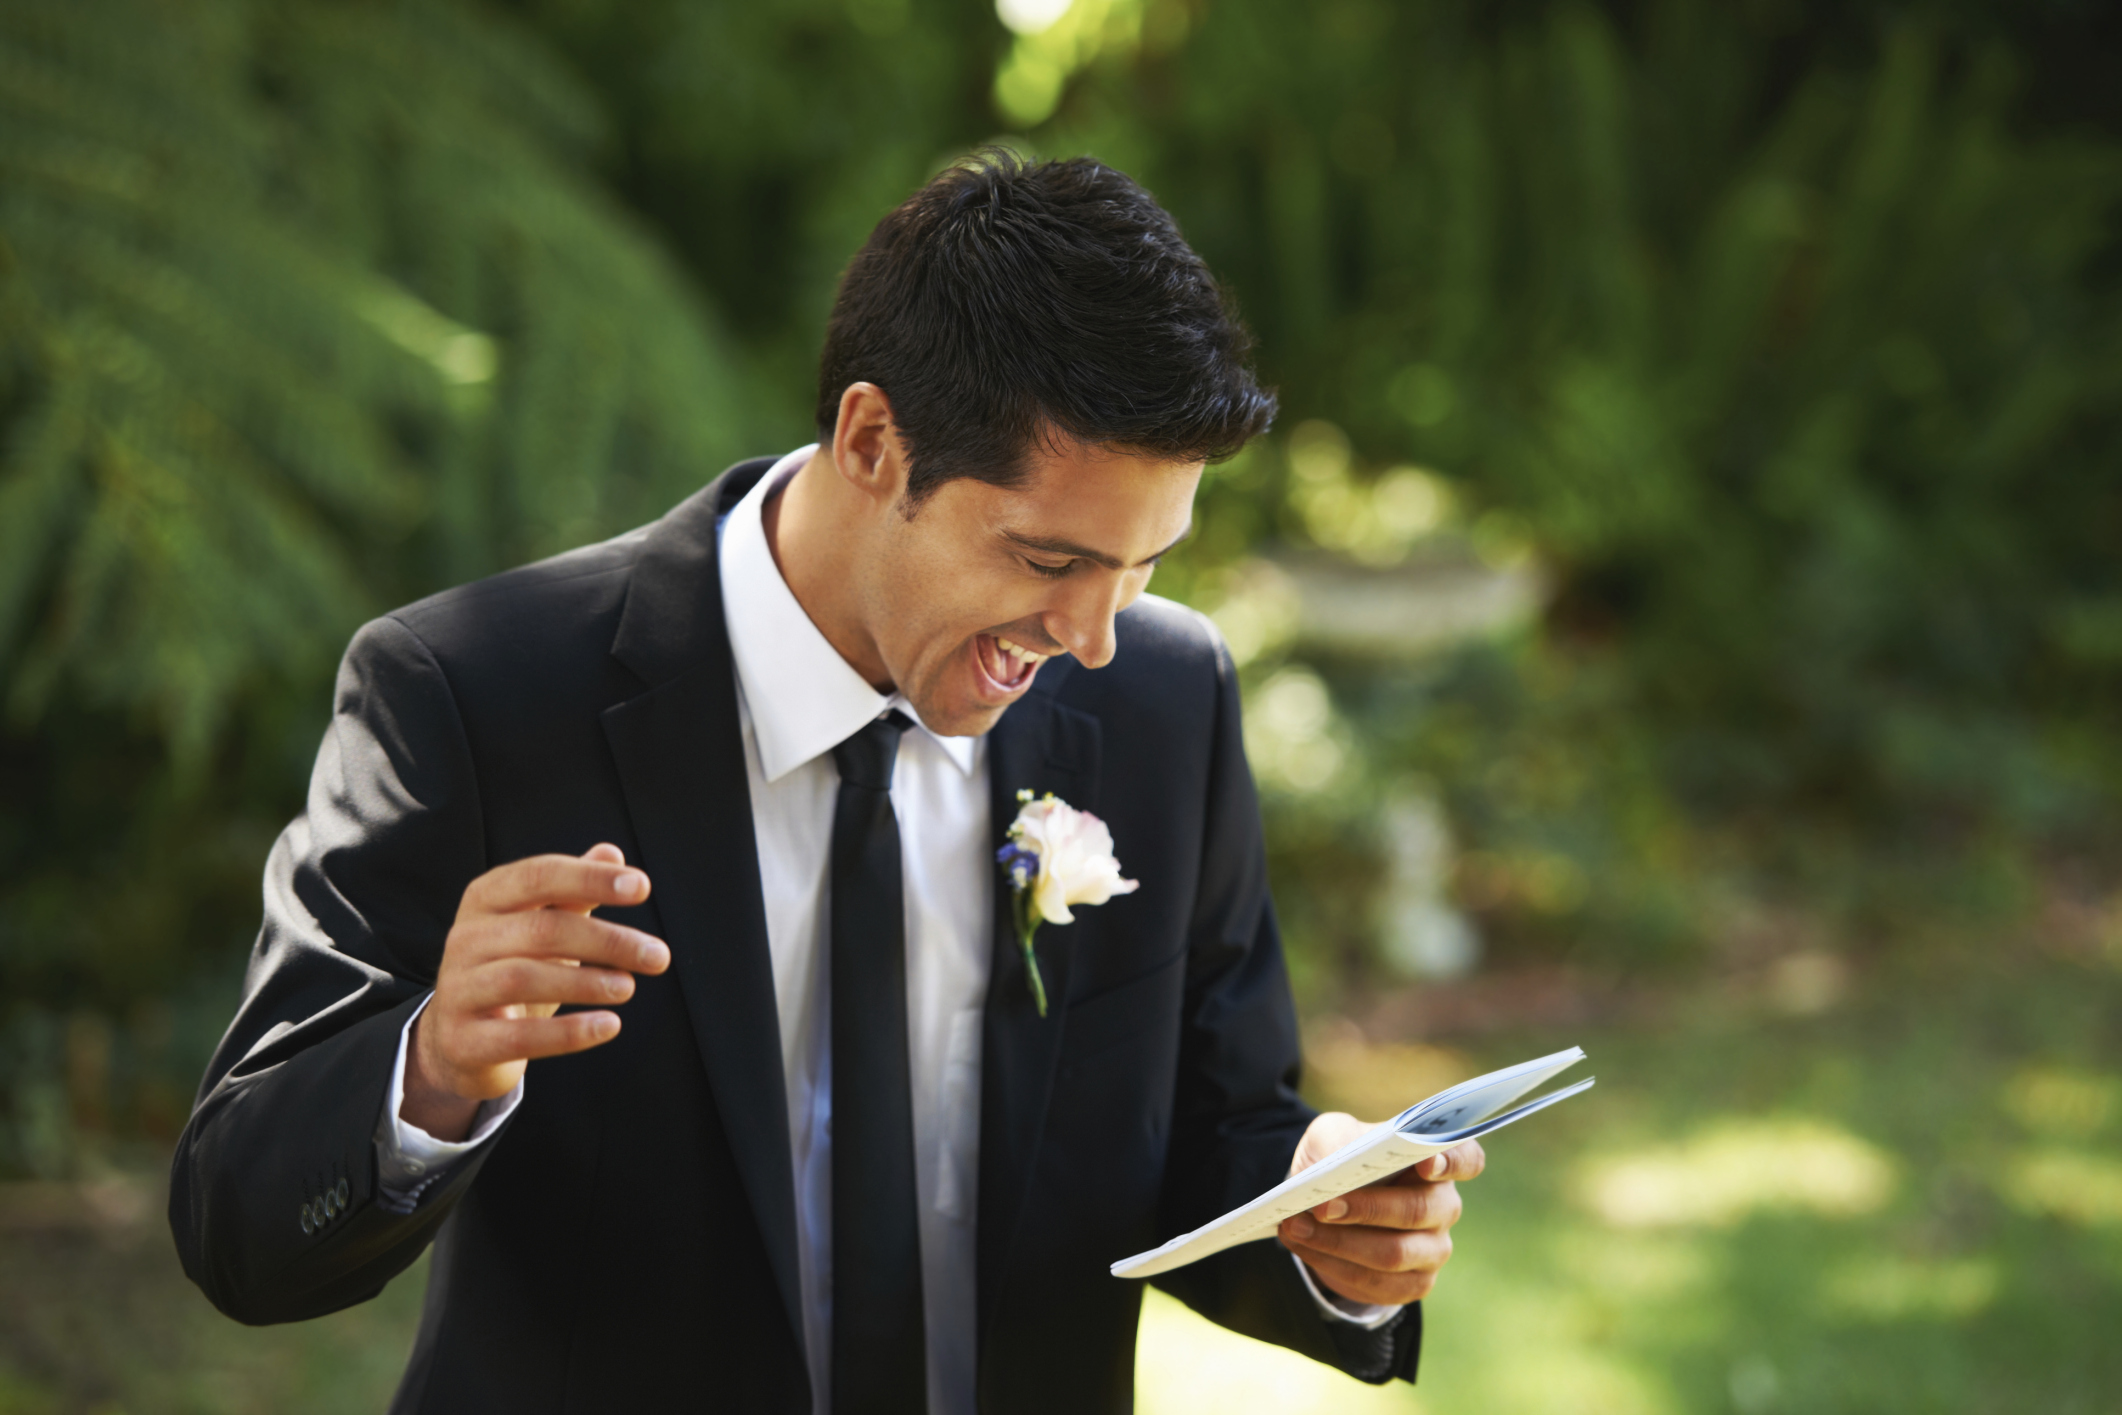 Groom Speech Template Example – Fill in the blanks